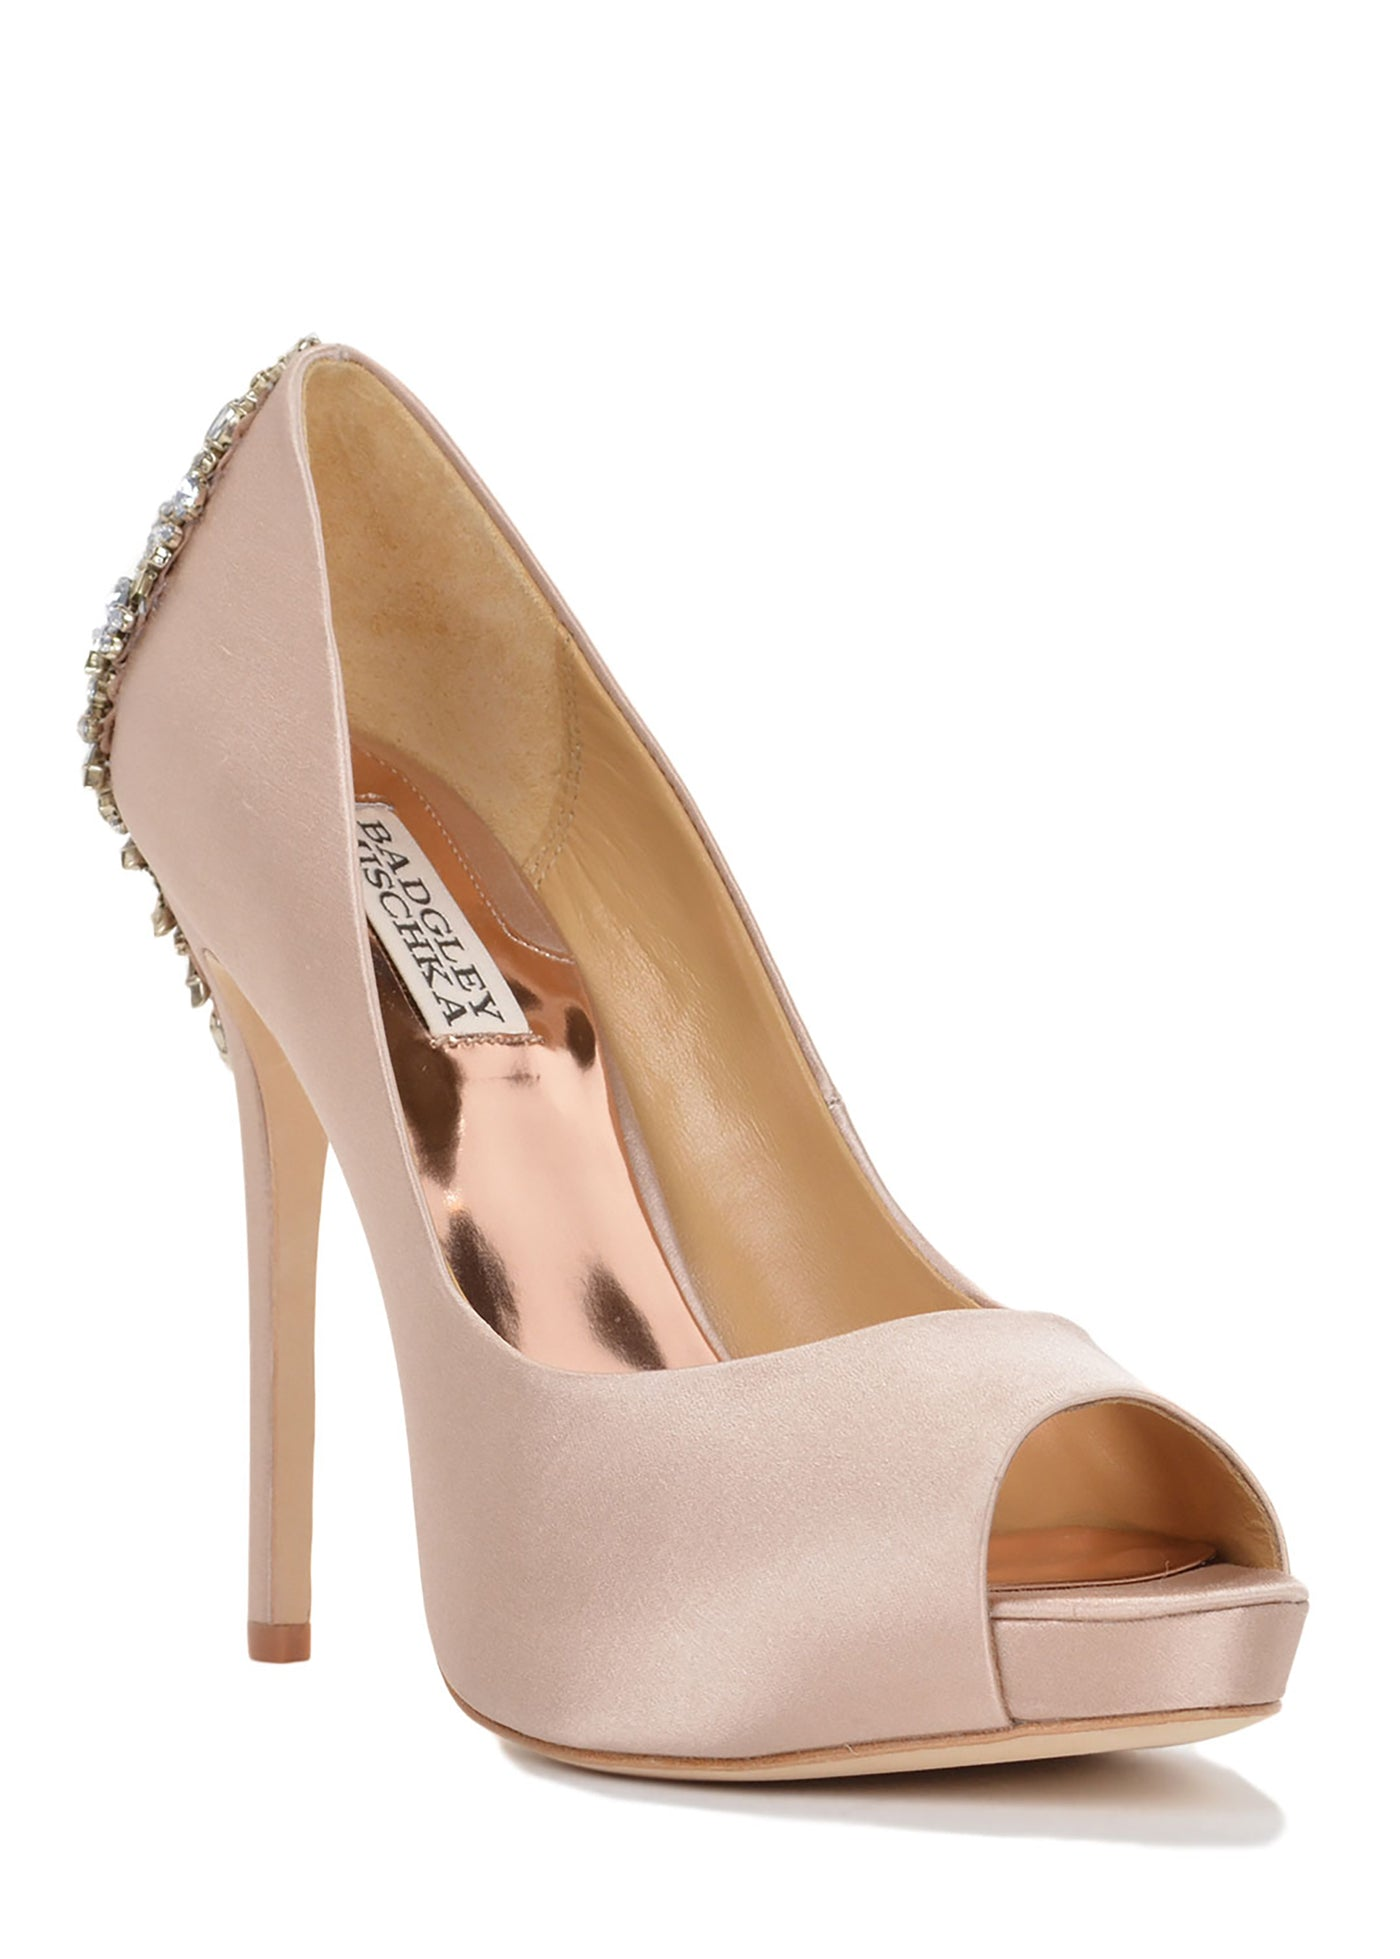 Kiara, Shoes, Badgley Mischka - Eternal Bridal